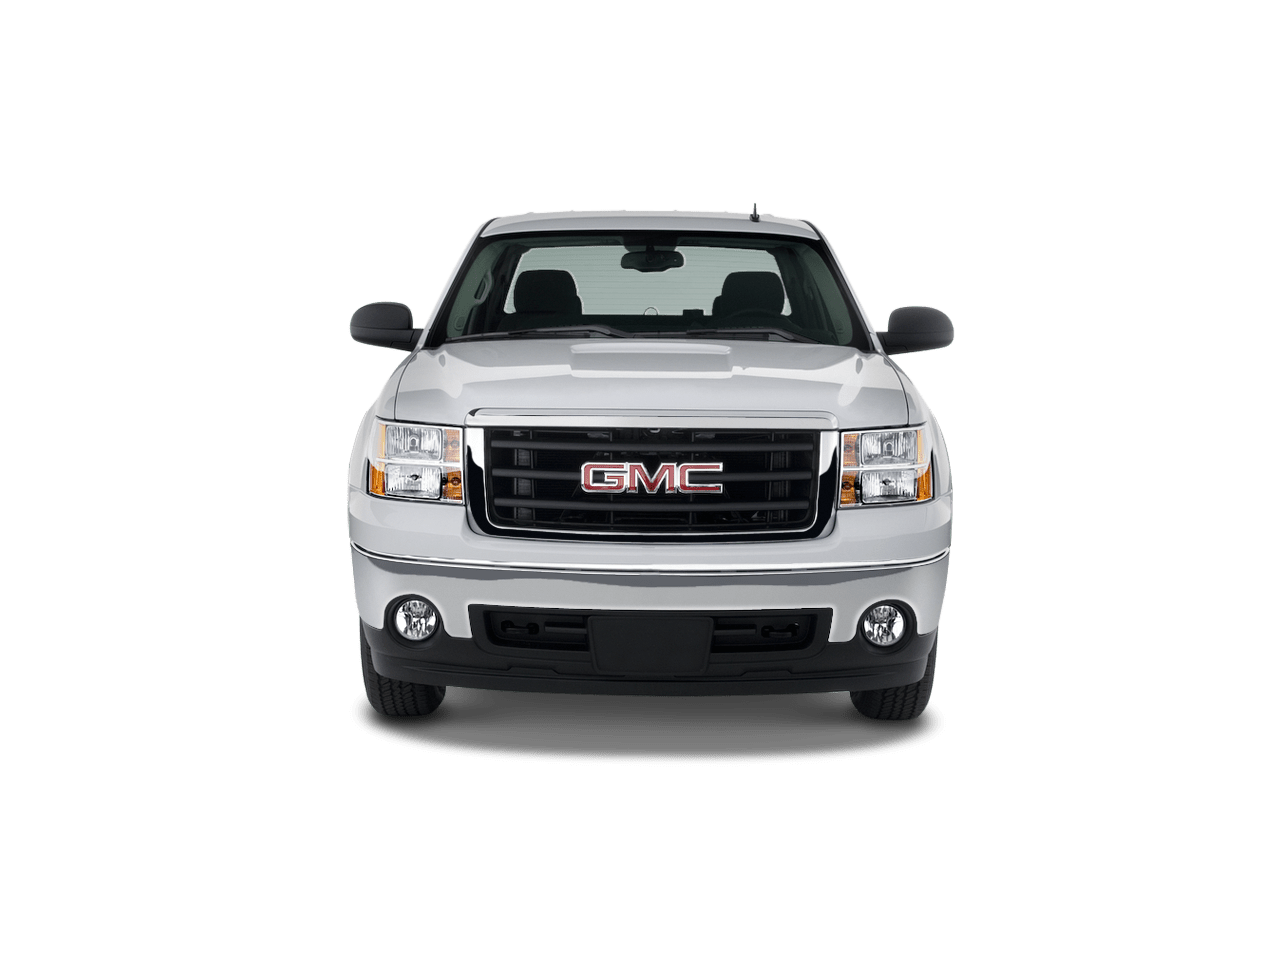 2007 GMC Sierra Reviews and Rating   Motor Trend 43   102